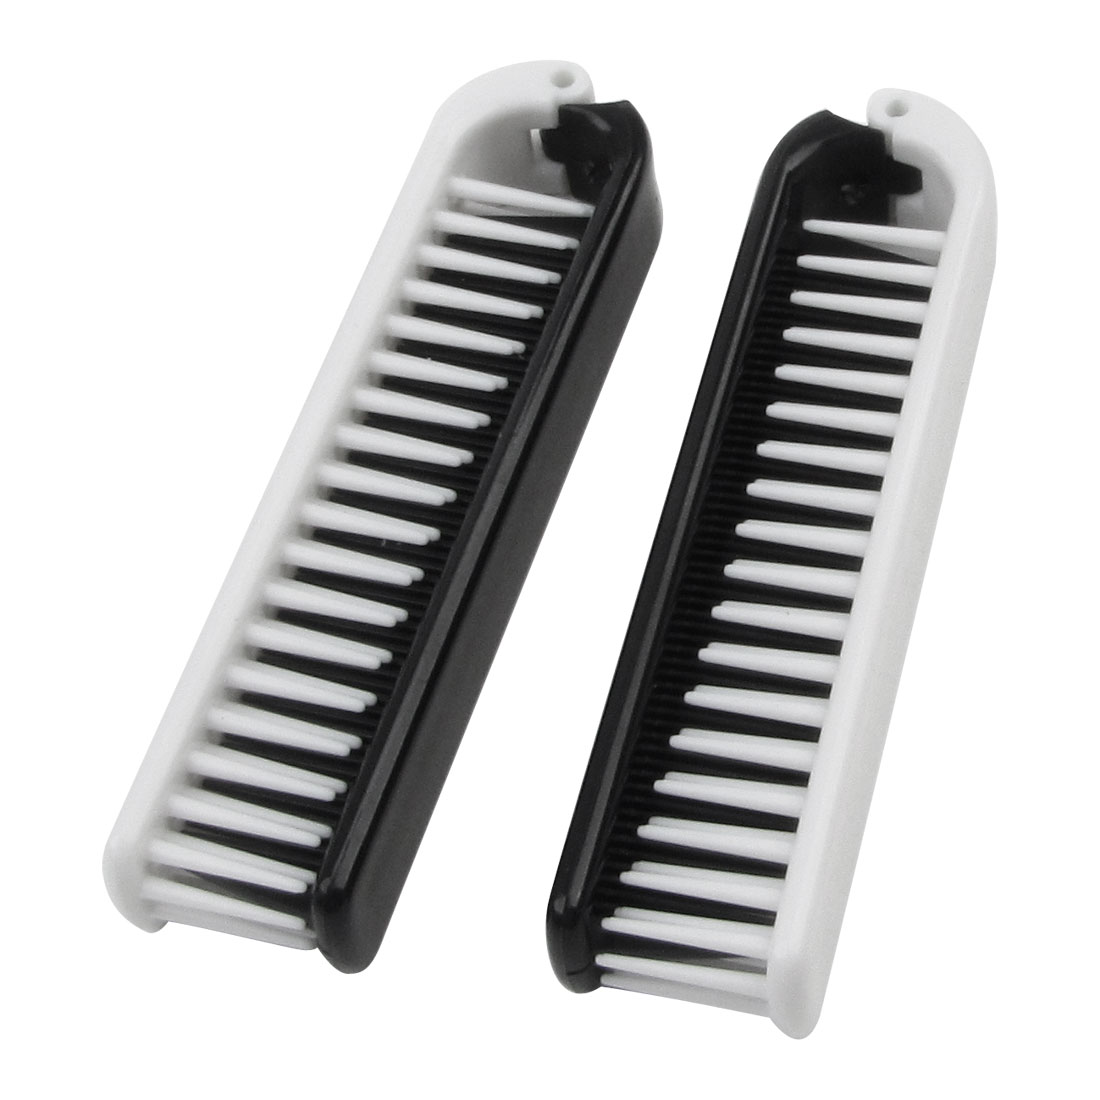 2 Pcs Portable White Black Plastic Dual Ends Foldable Hairdressing Comb